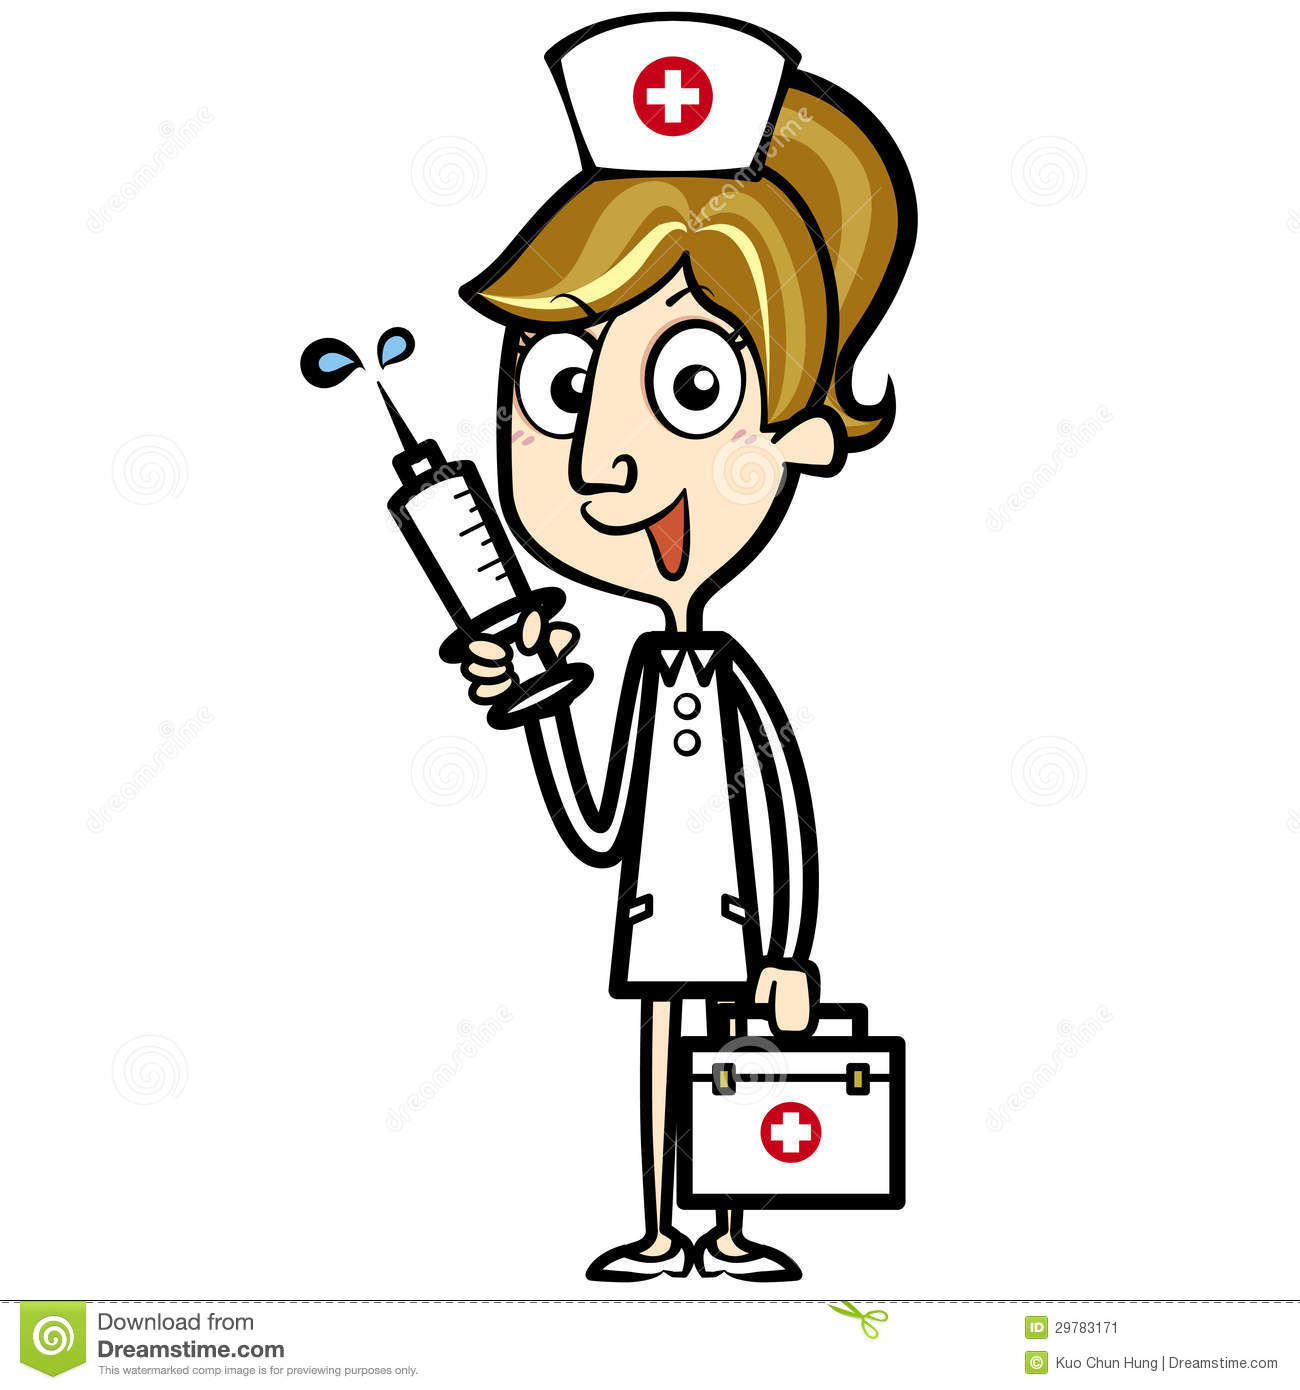 Syringe Clip Art Cartoon Stock Photos, Images, & Pictures - 252 Images